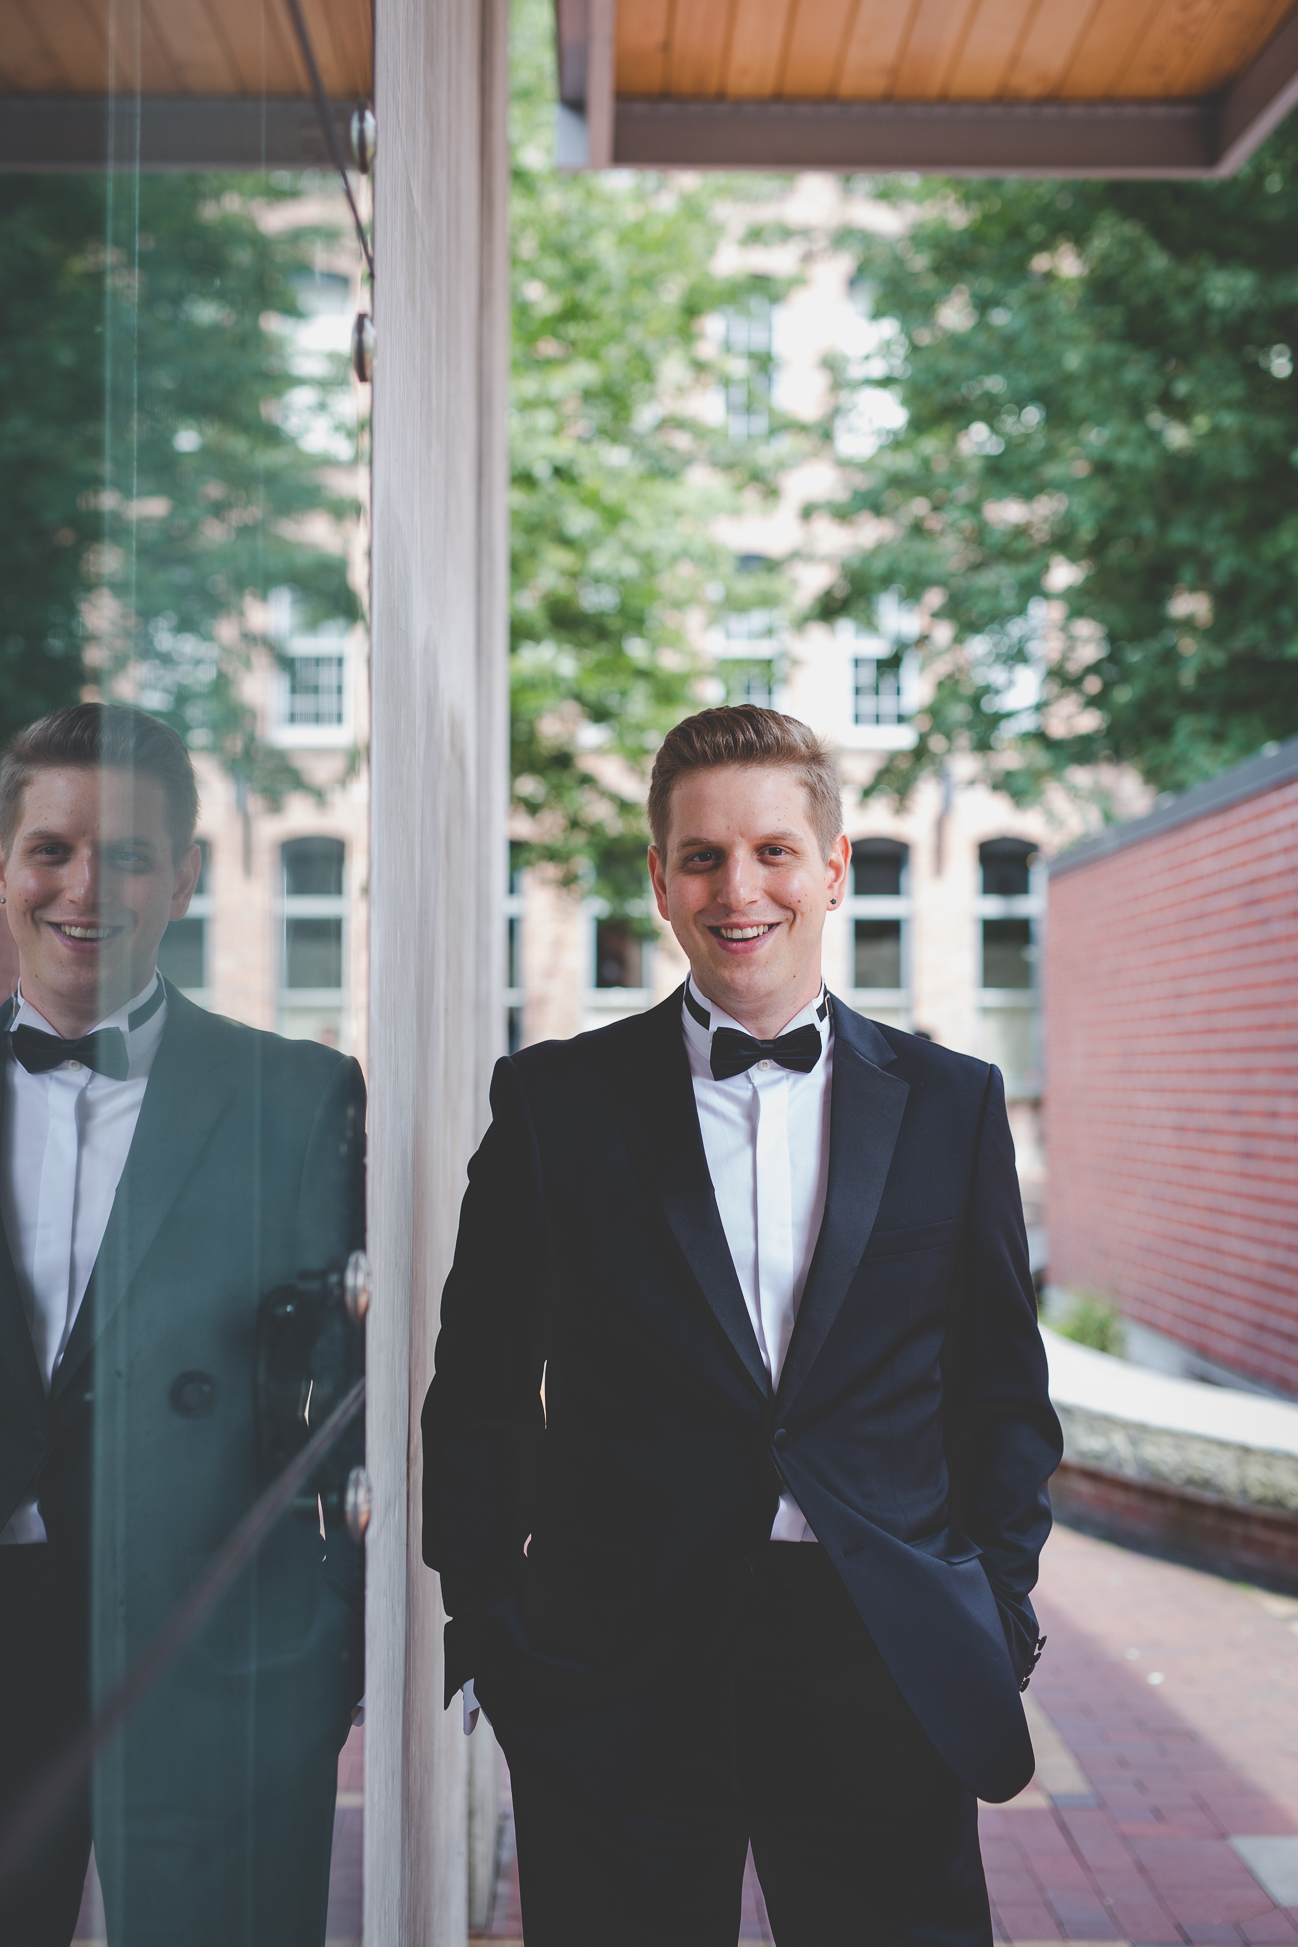 groom in black tuxedo and black bow tie standing next to window with reflection in glass